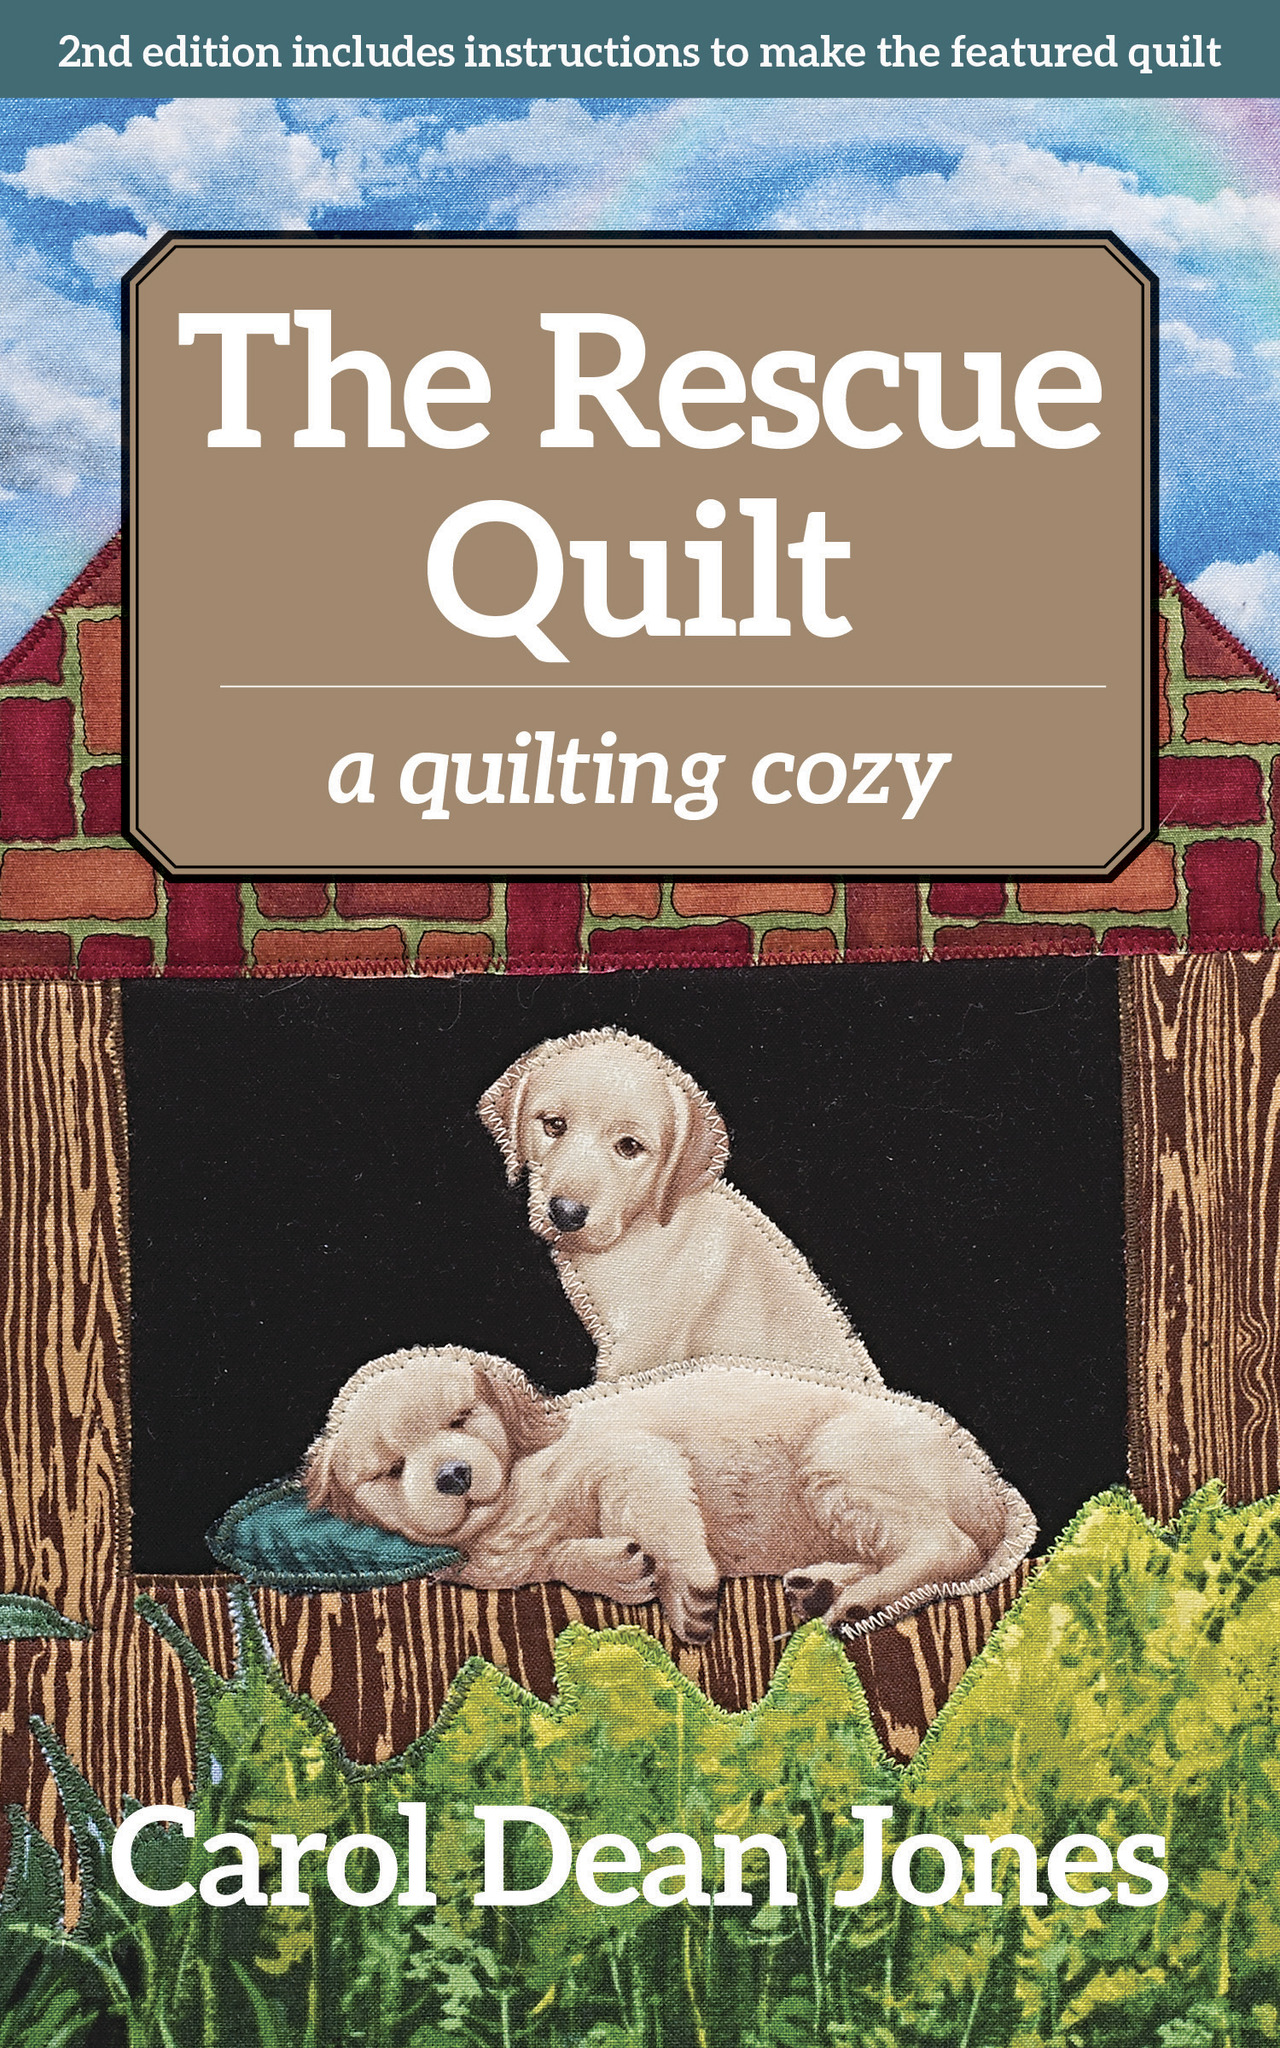 The Rescue Quilt.jpg